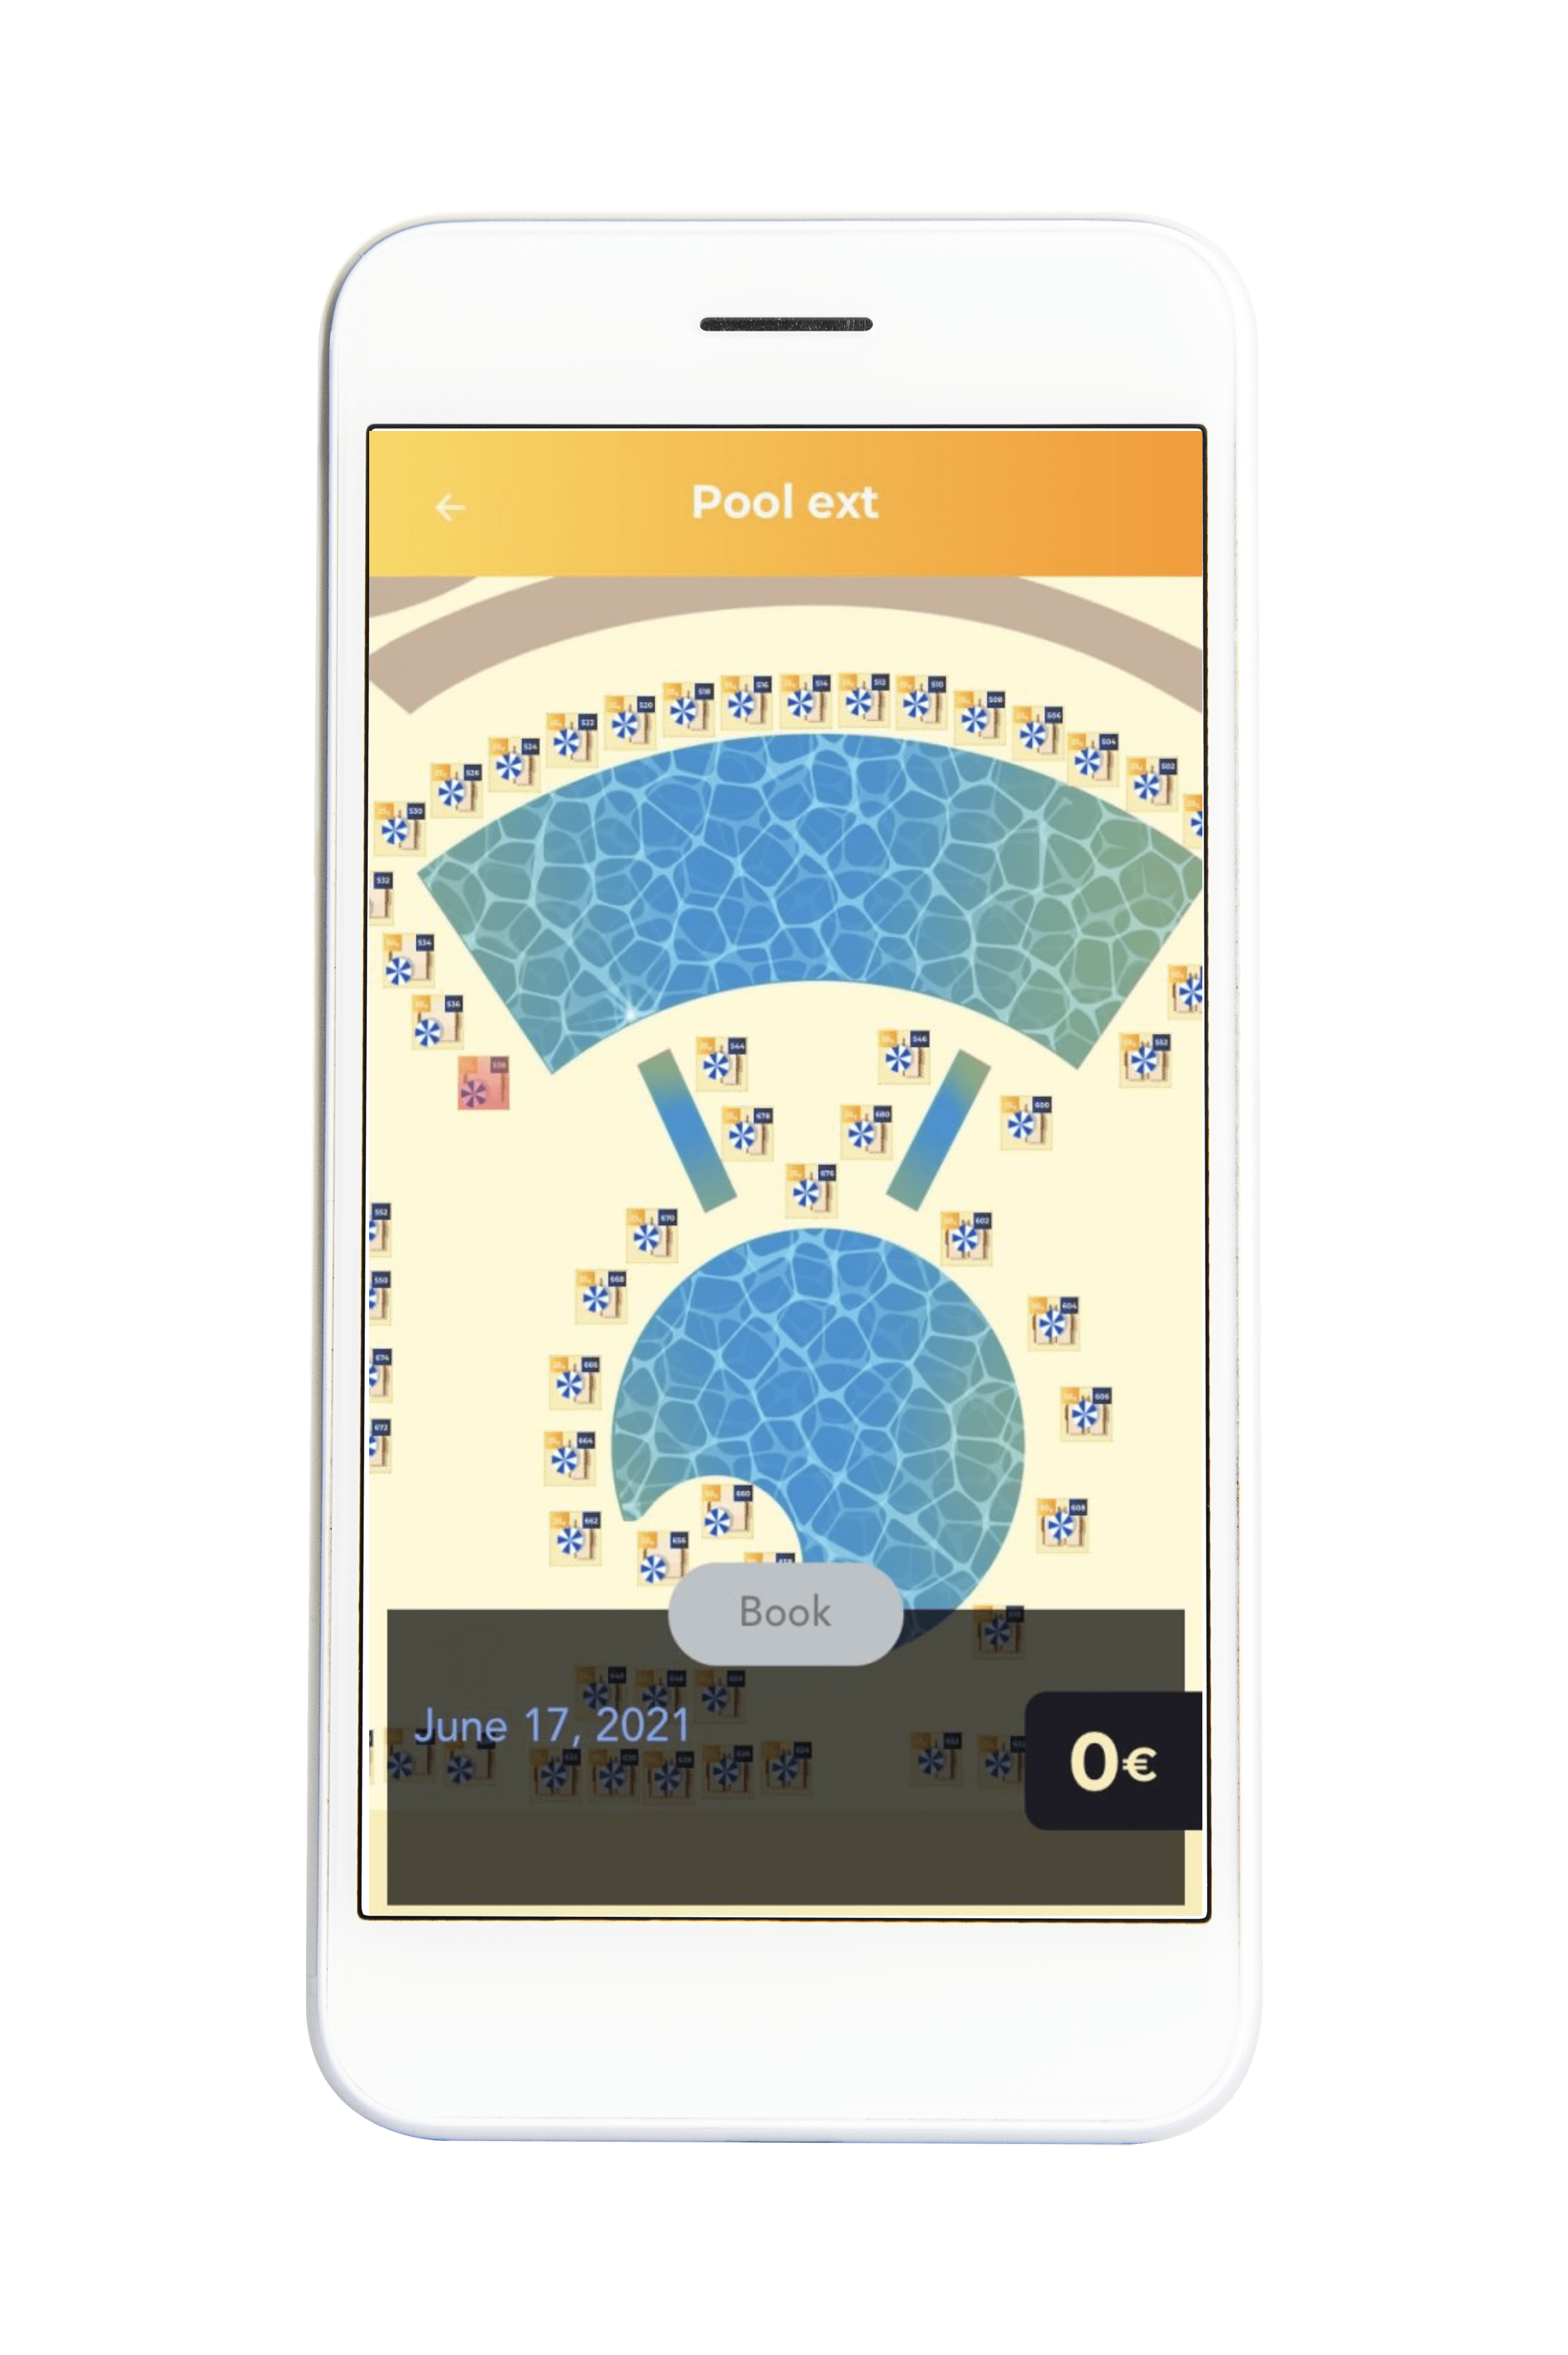 Hotel management app for hotel's private beach and pool